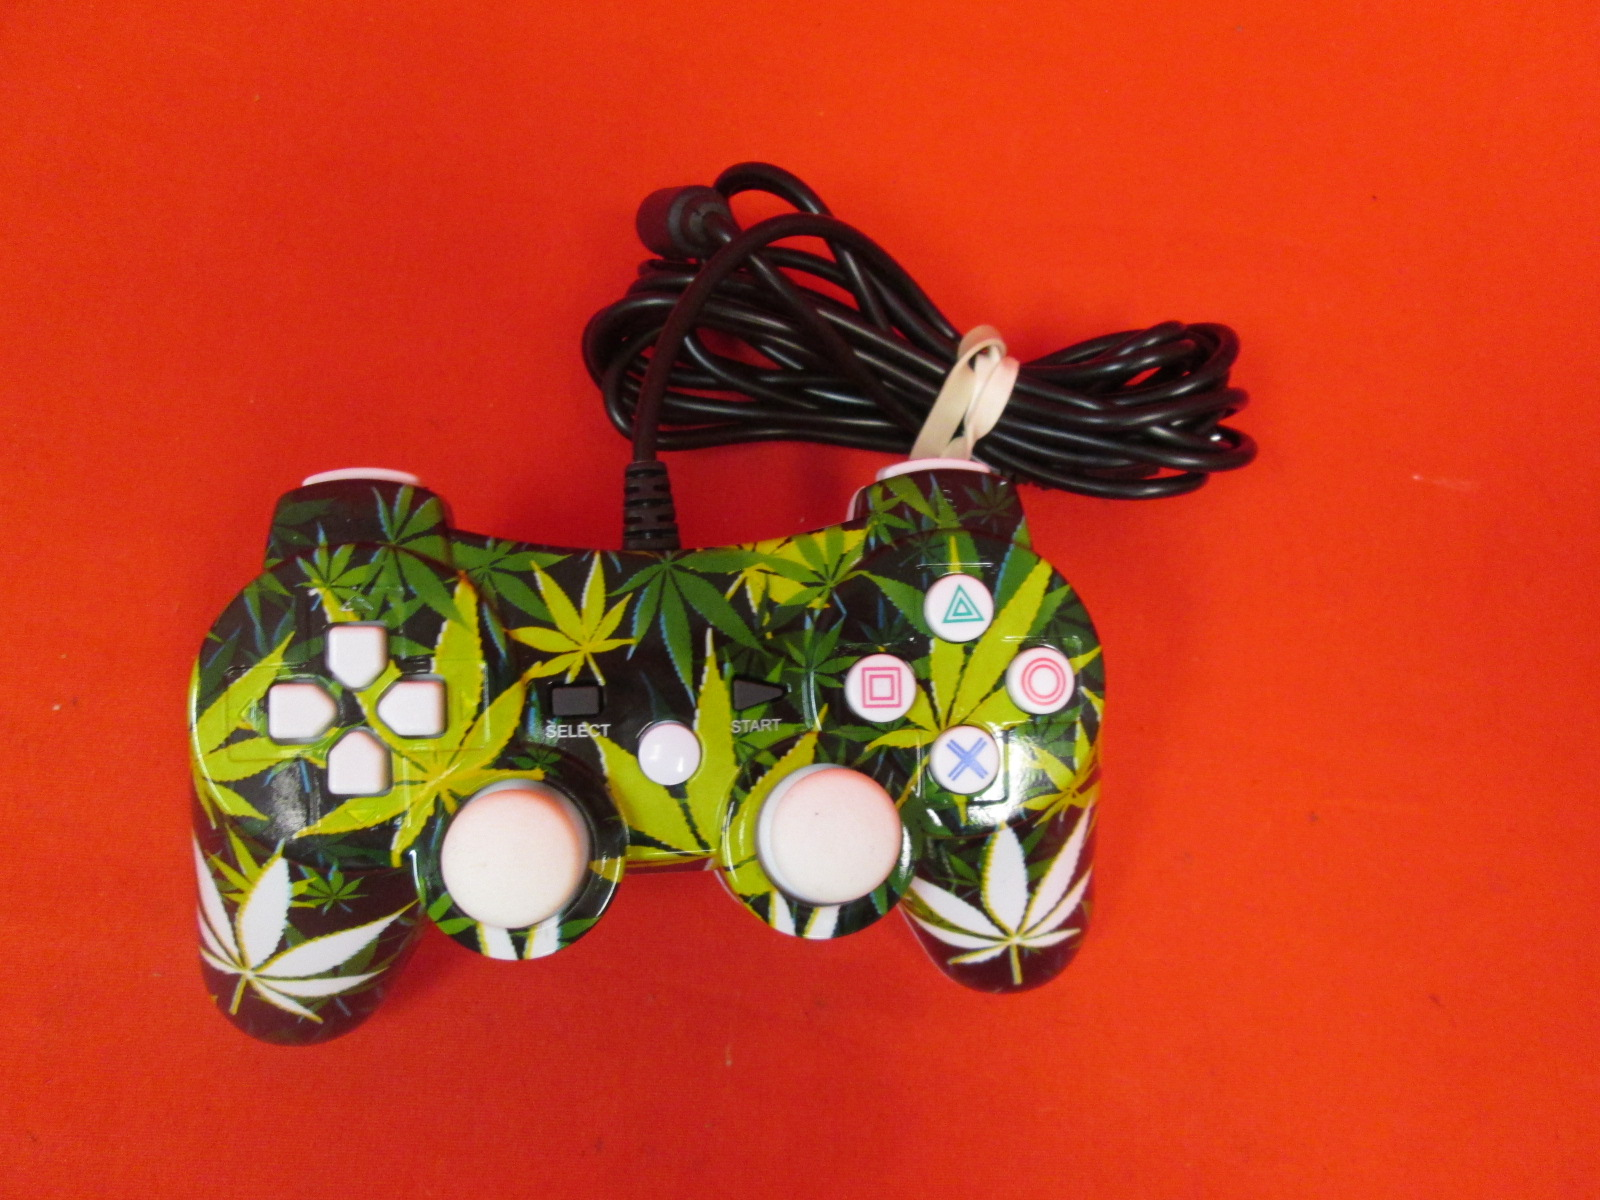 Generic Pot Leaf Wired Controller For PlayStation 3 PS3